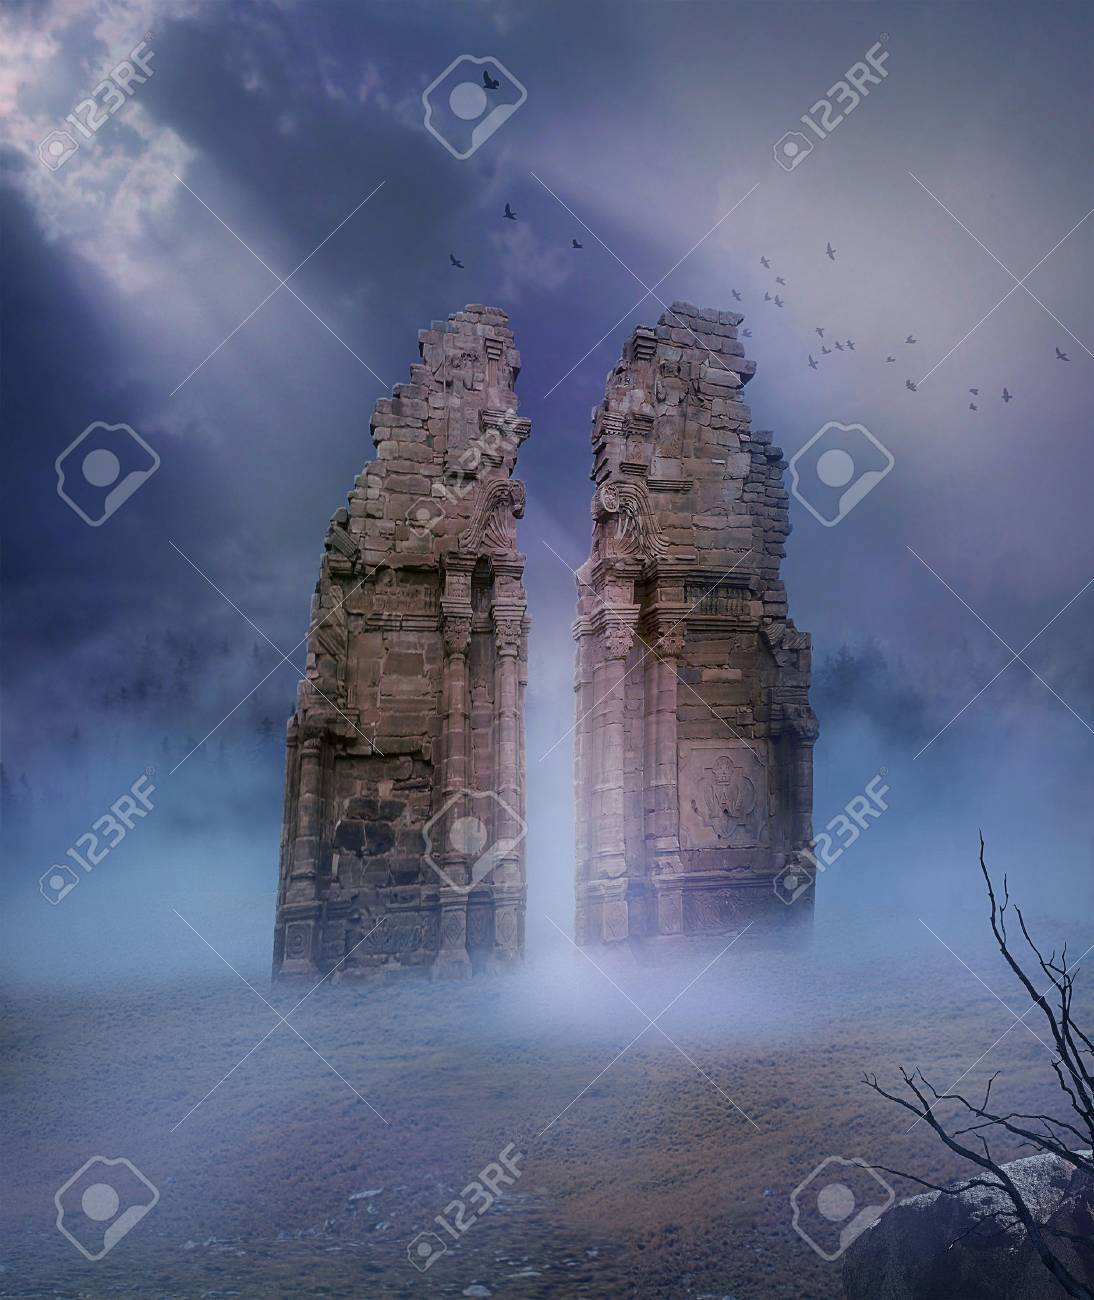 view of ruins of old temple in a desert illuminated with a ray of light - 45240589